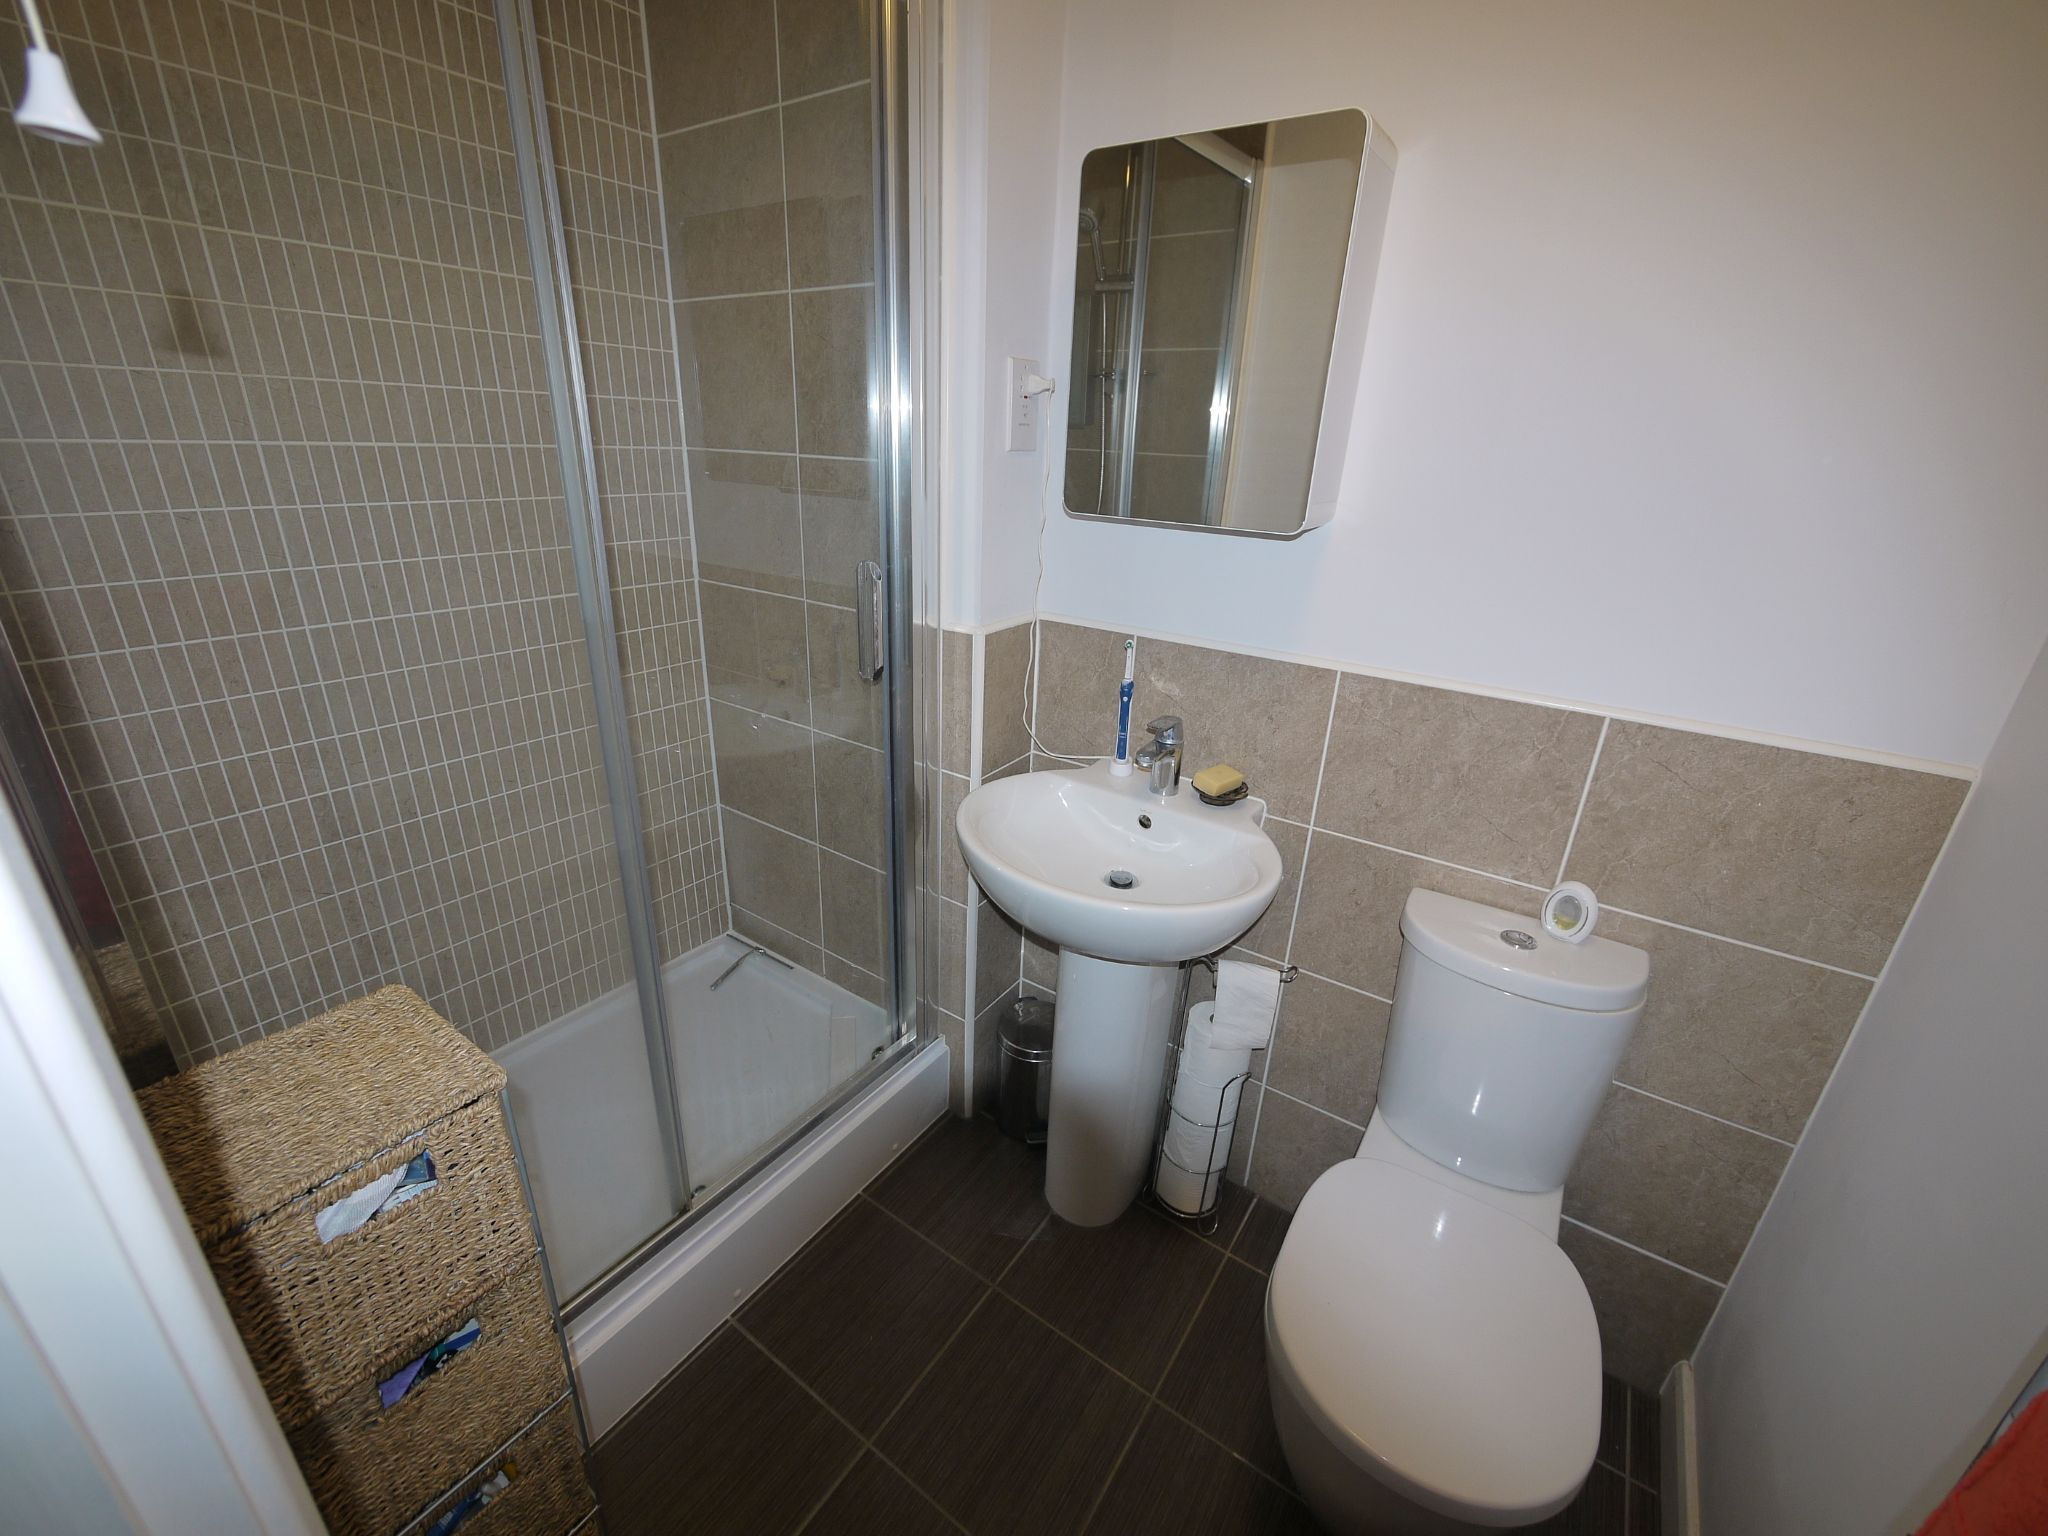 3 bedroom end terraced house SSTC in Cleckheaton - Ensuite.